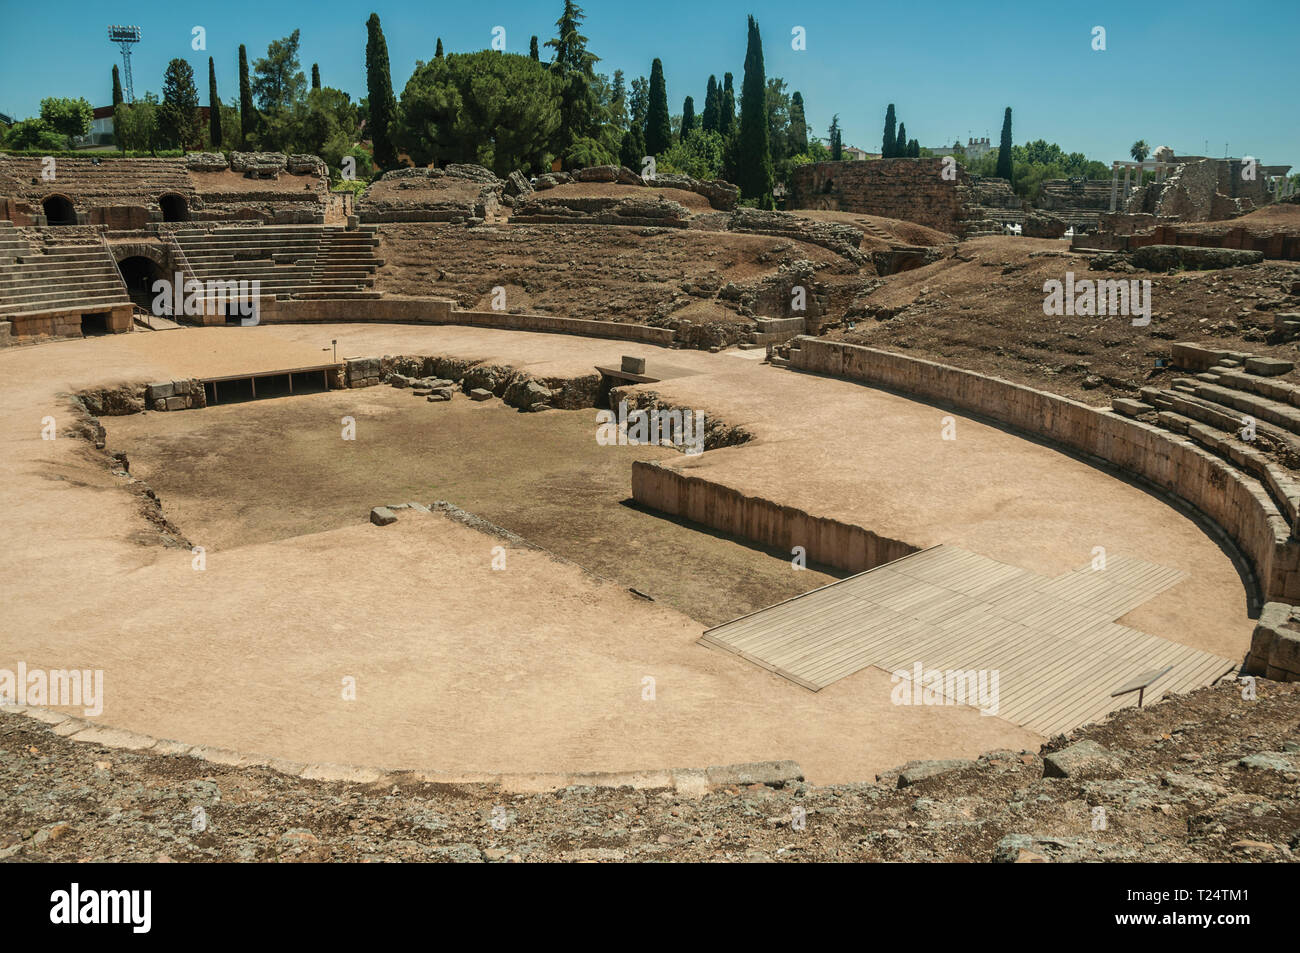 Stone bleachers and arena in the Roman Amphitheater at the archaeological site of Merida. The city preserves many buildings of ancient Rome in Spain. - Stock Image